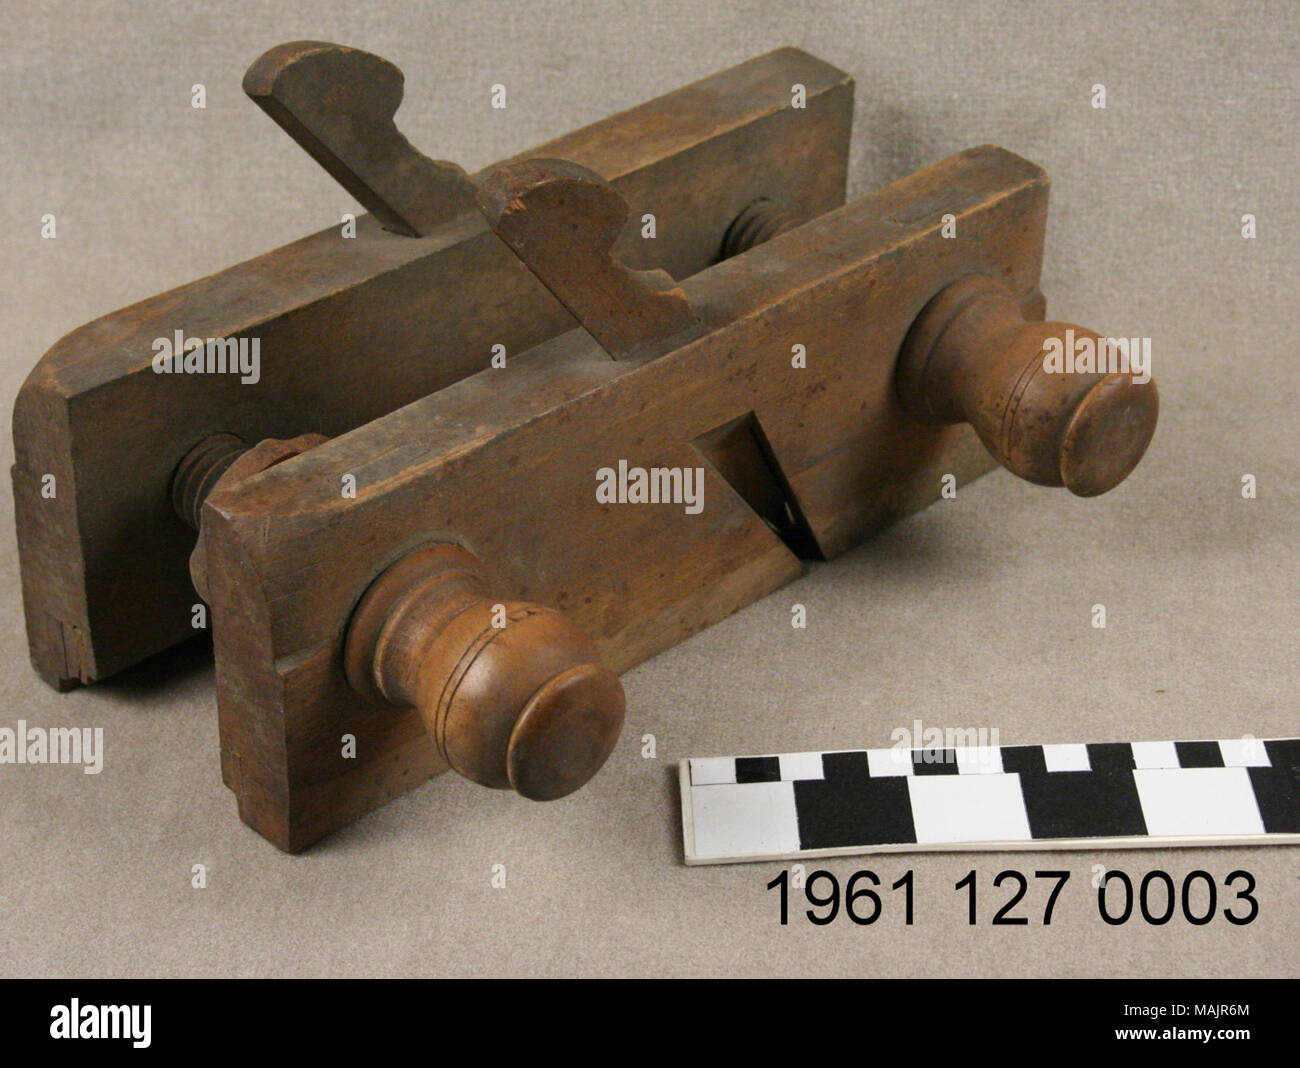 A wooden sash plane with adjustable screw arms. Title: Wooden Adjustable Screw Arm Sash Plane  . circa 1840. John Creagh - Stock Image